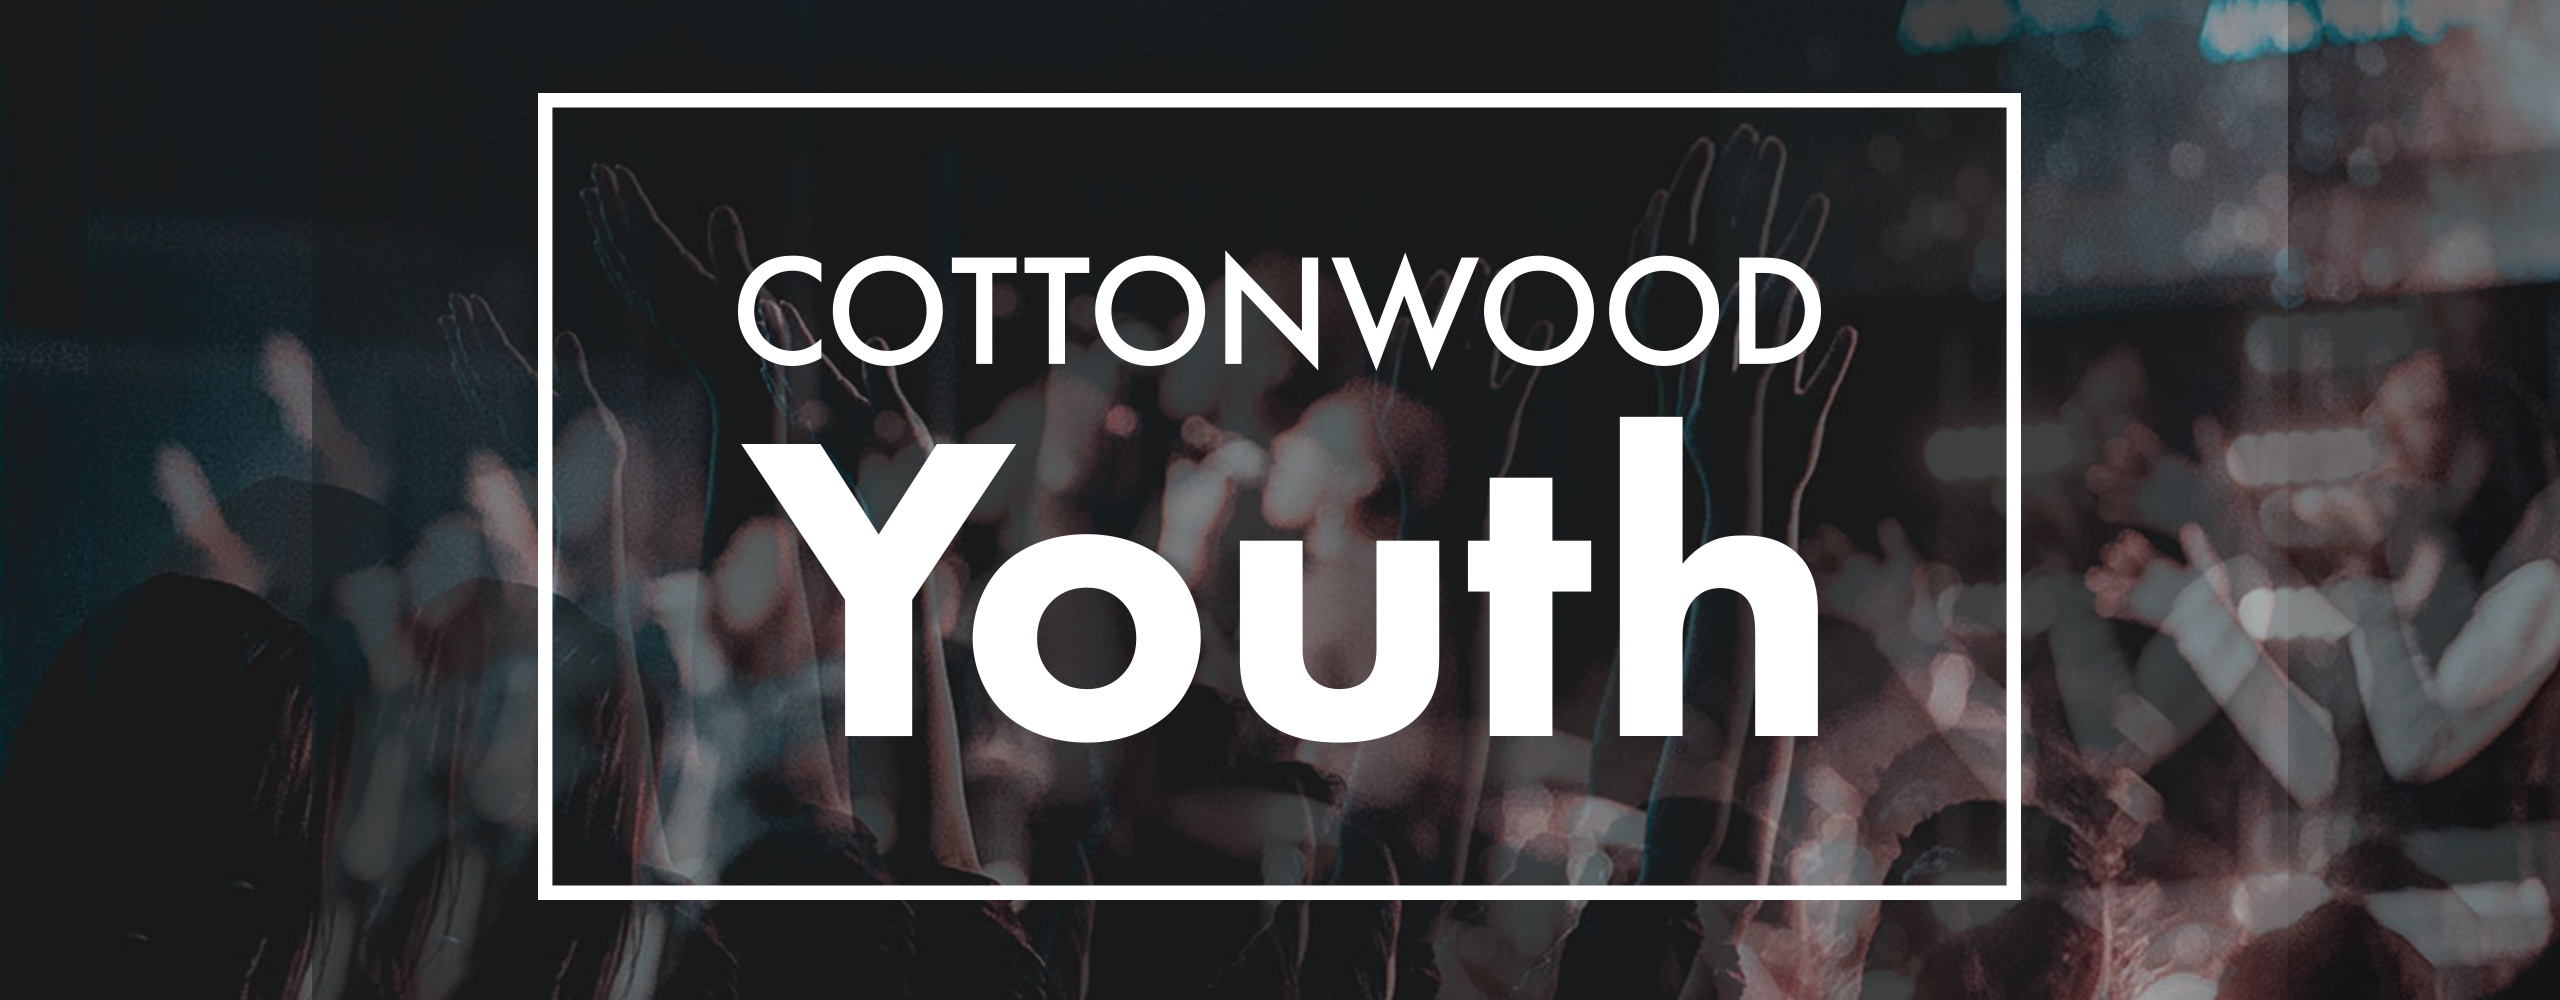 Cottonwood Youth Banner